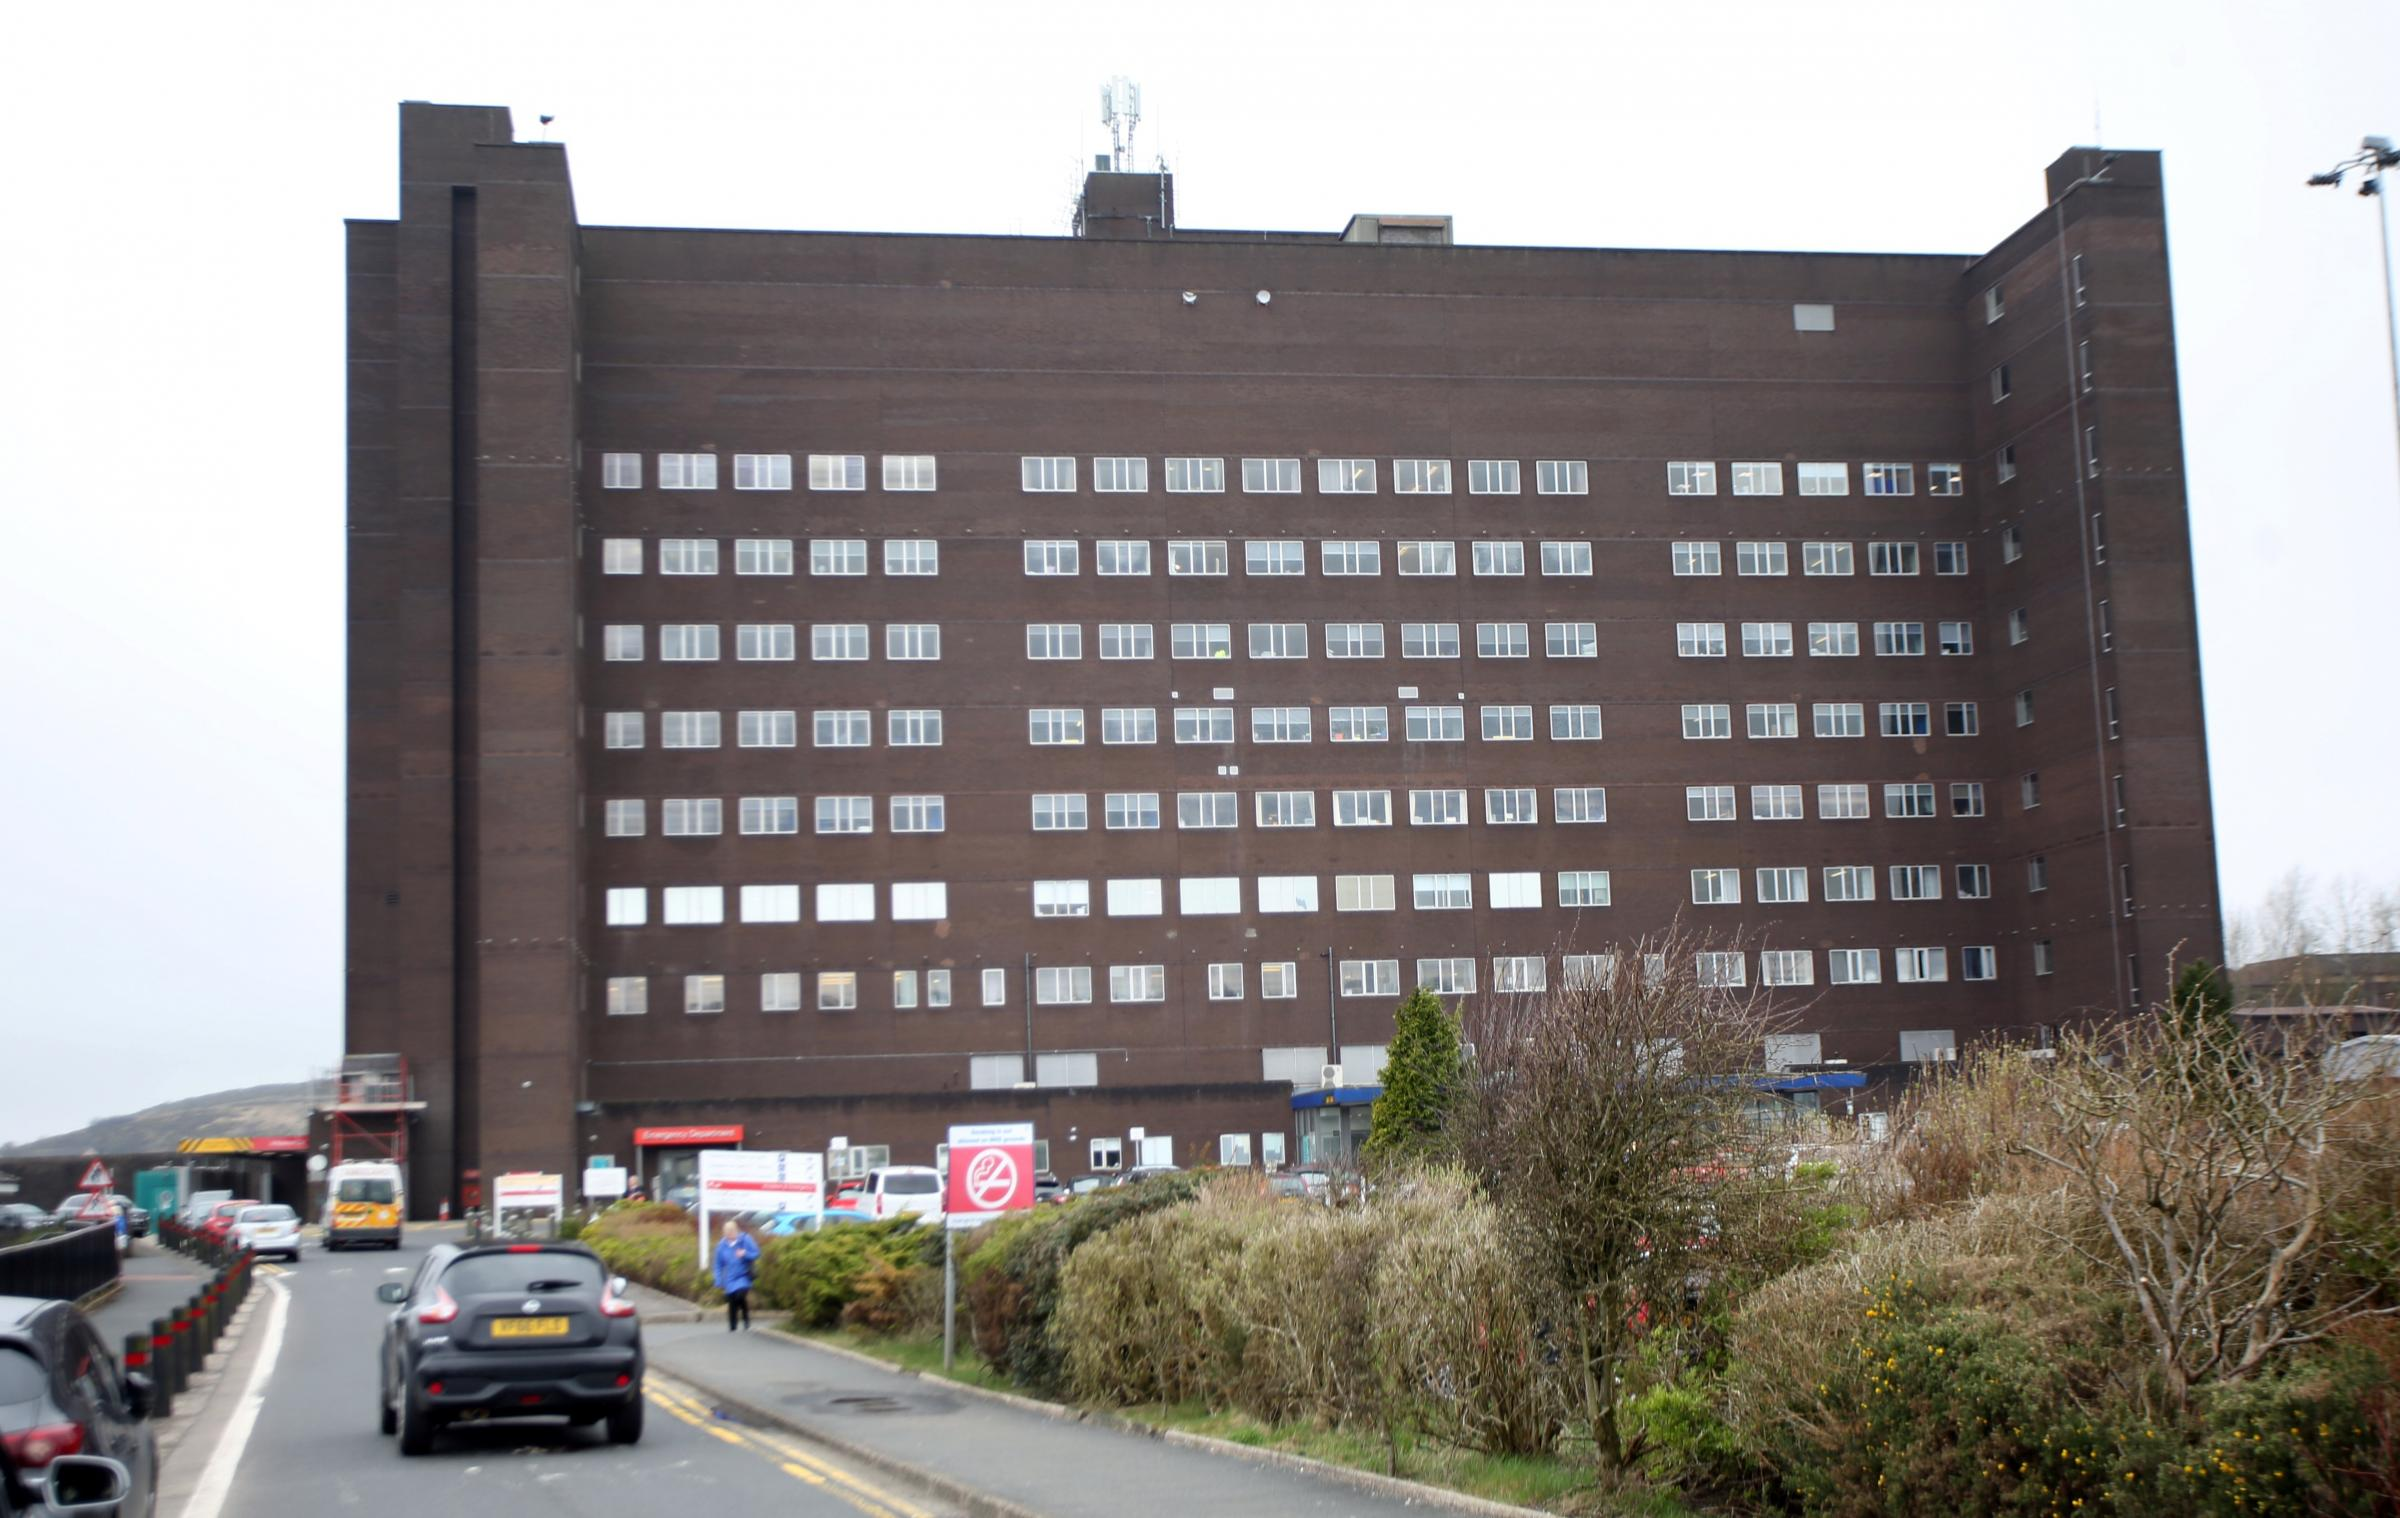 Inverclyde Royal Hospital